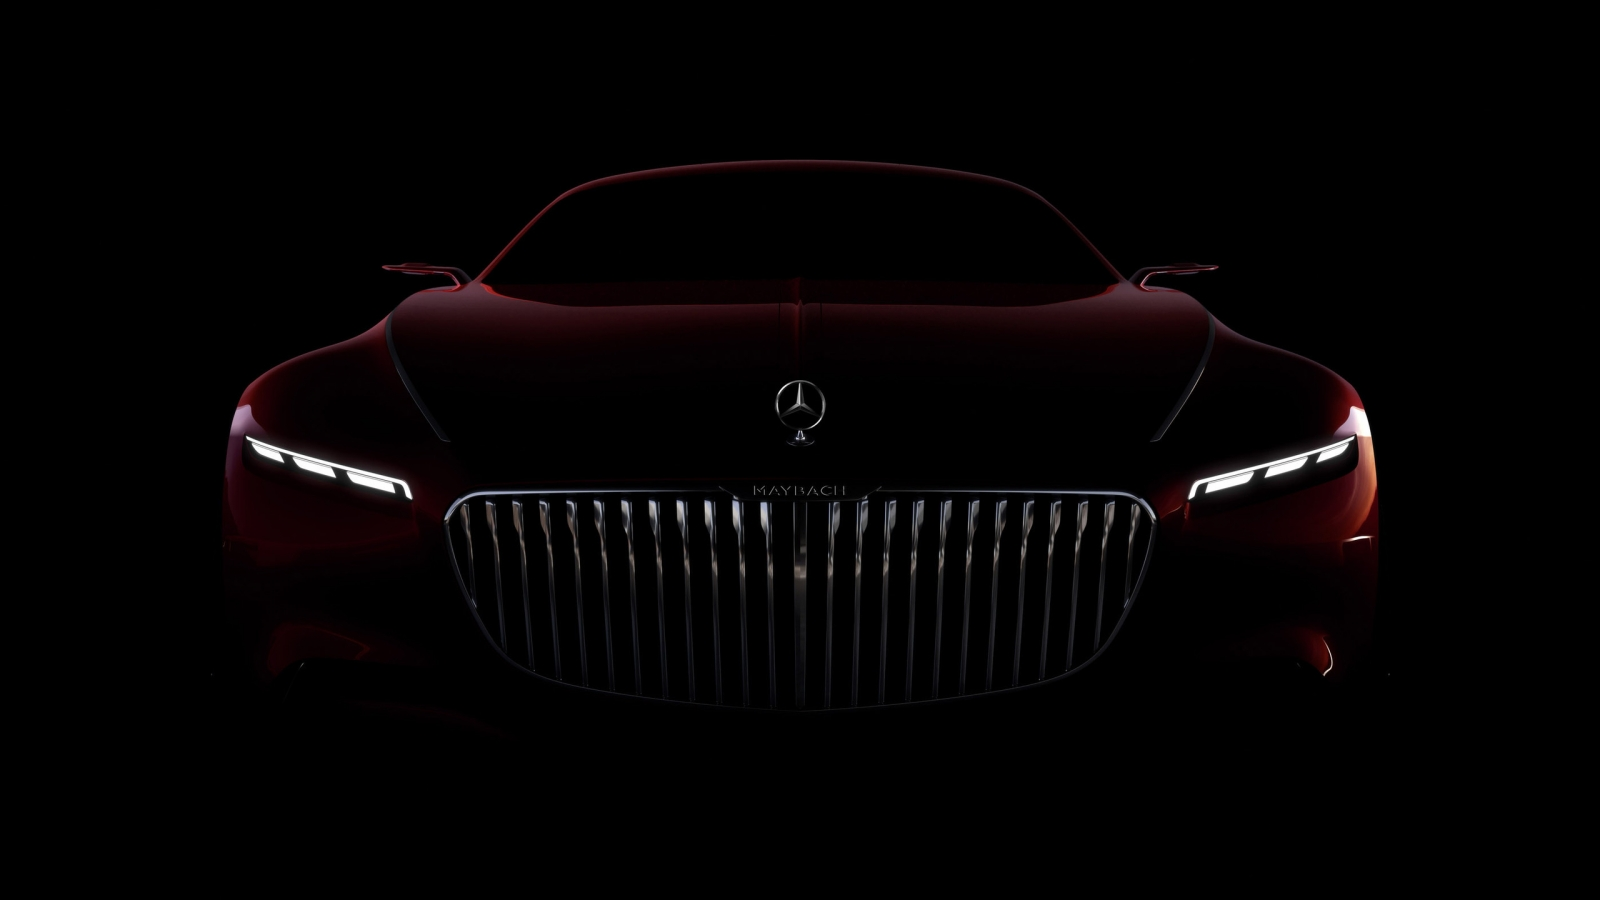 Amazing Vision Mercedes Maybach 6 2016 for 1600 x 900 HDTV resolution